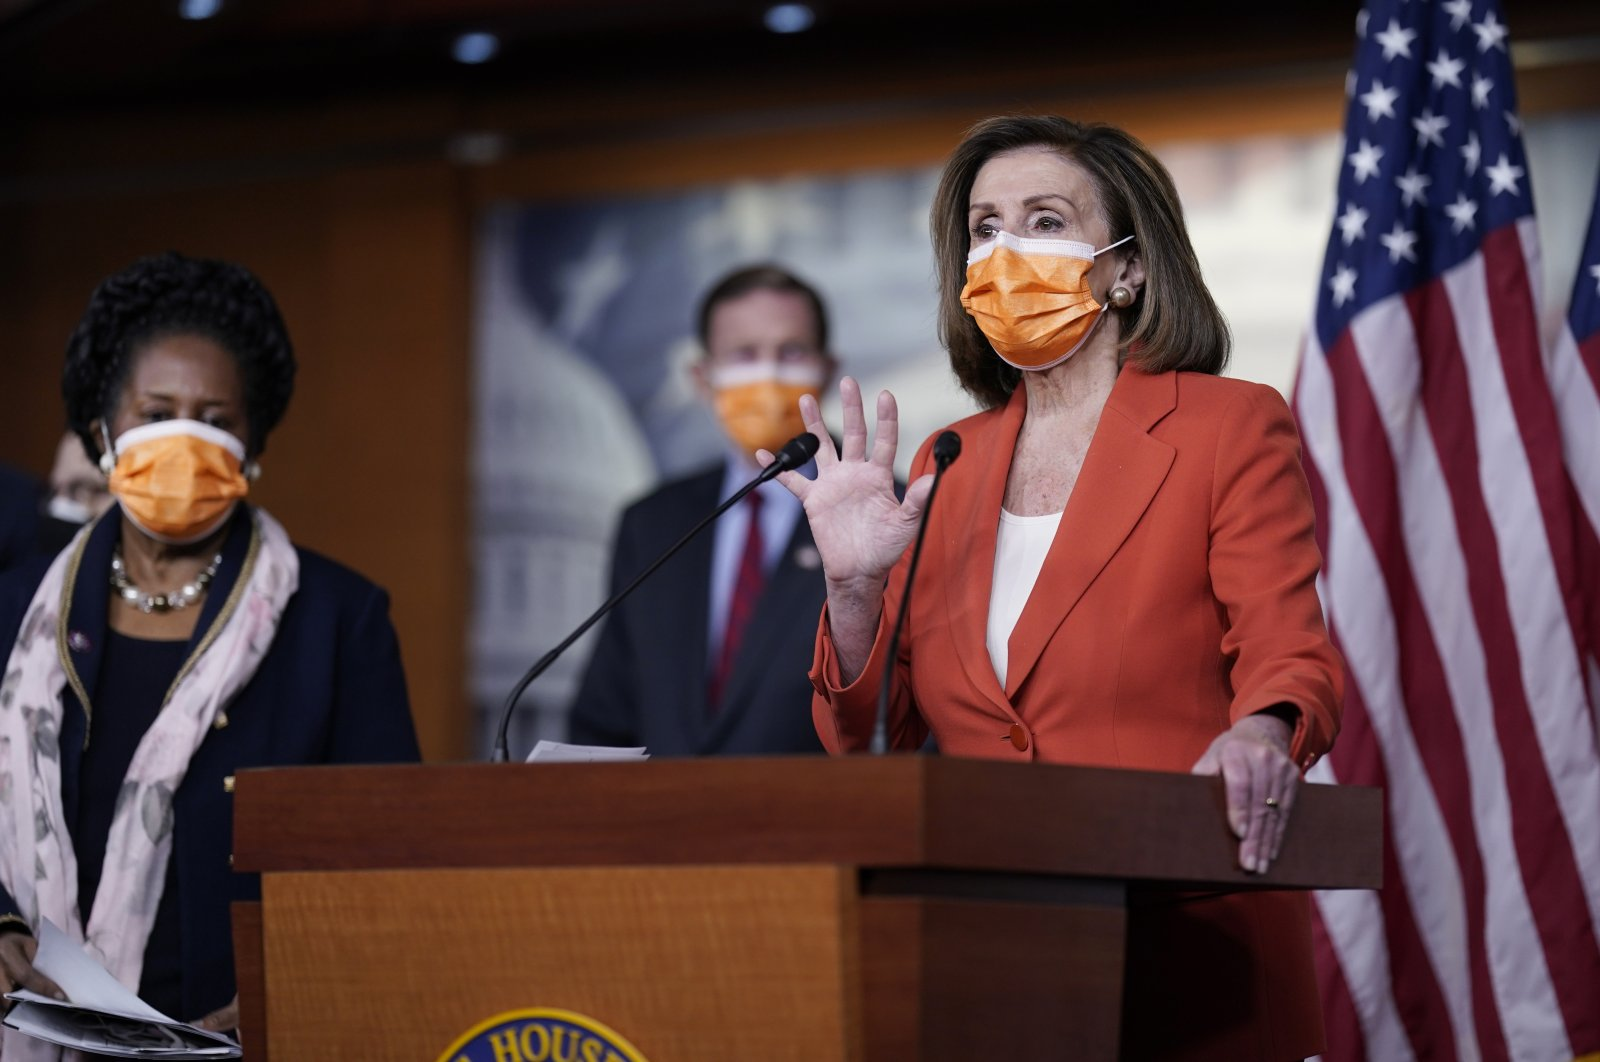 Speaker of the House Nancy Pelosi (R), holds a news conference on passage of gun violence prevention legislation, as Rep. Sheila Jackson Lee (L), and Sen. Richard Blumenthal, look on, Washington, the U.S., March 11, 2021. (AP Photo)